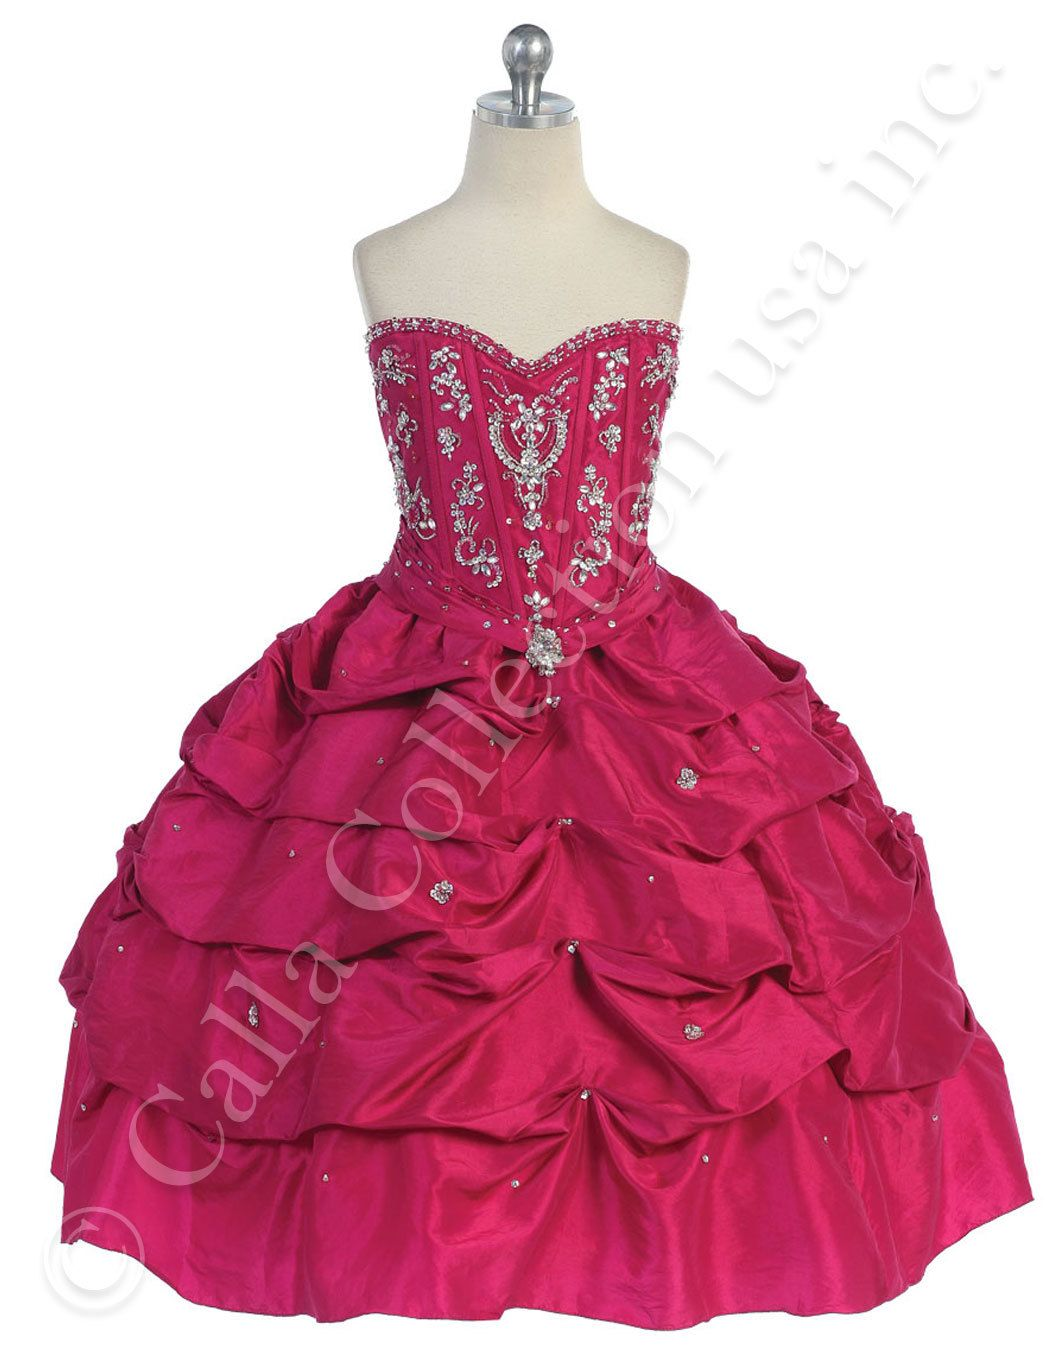 Preteen pageant gowns fuchsia prom and beauty pageant dresses for